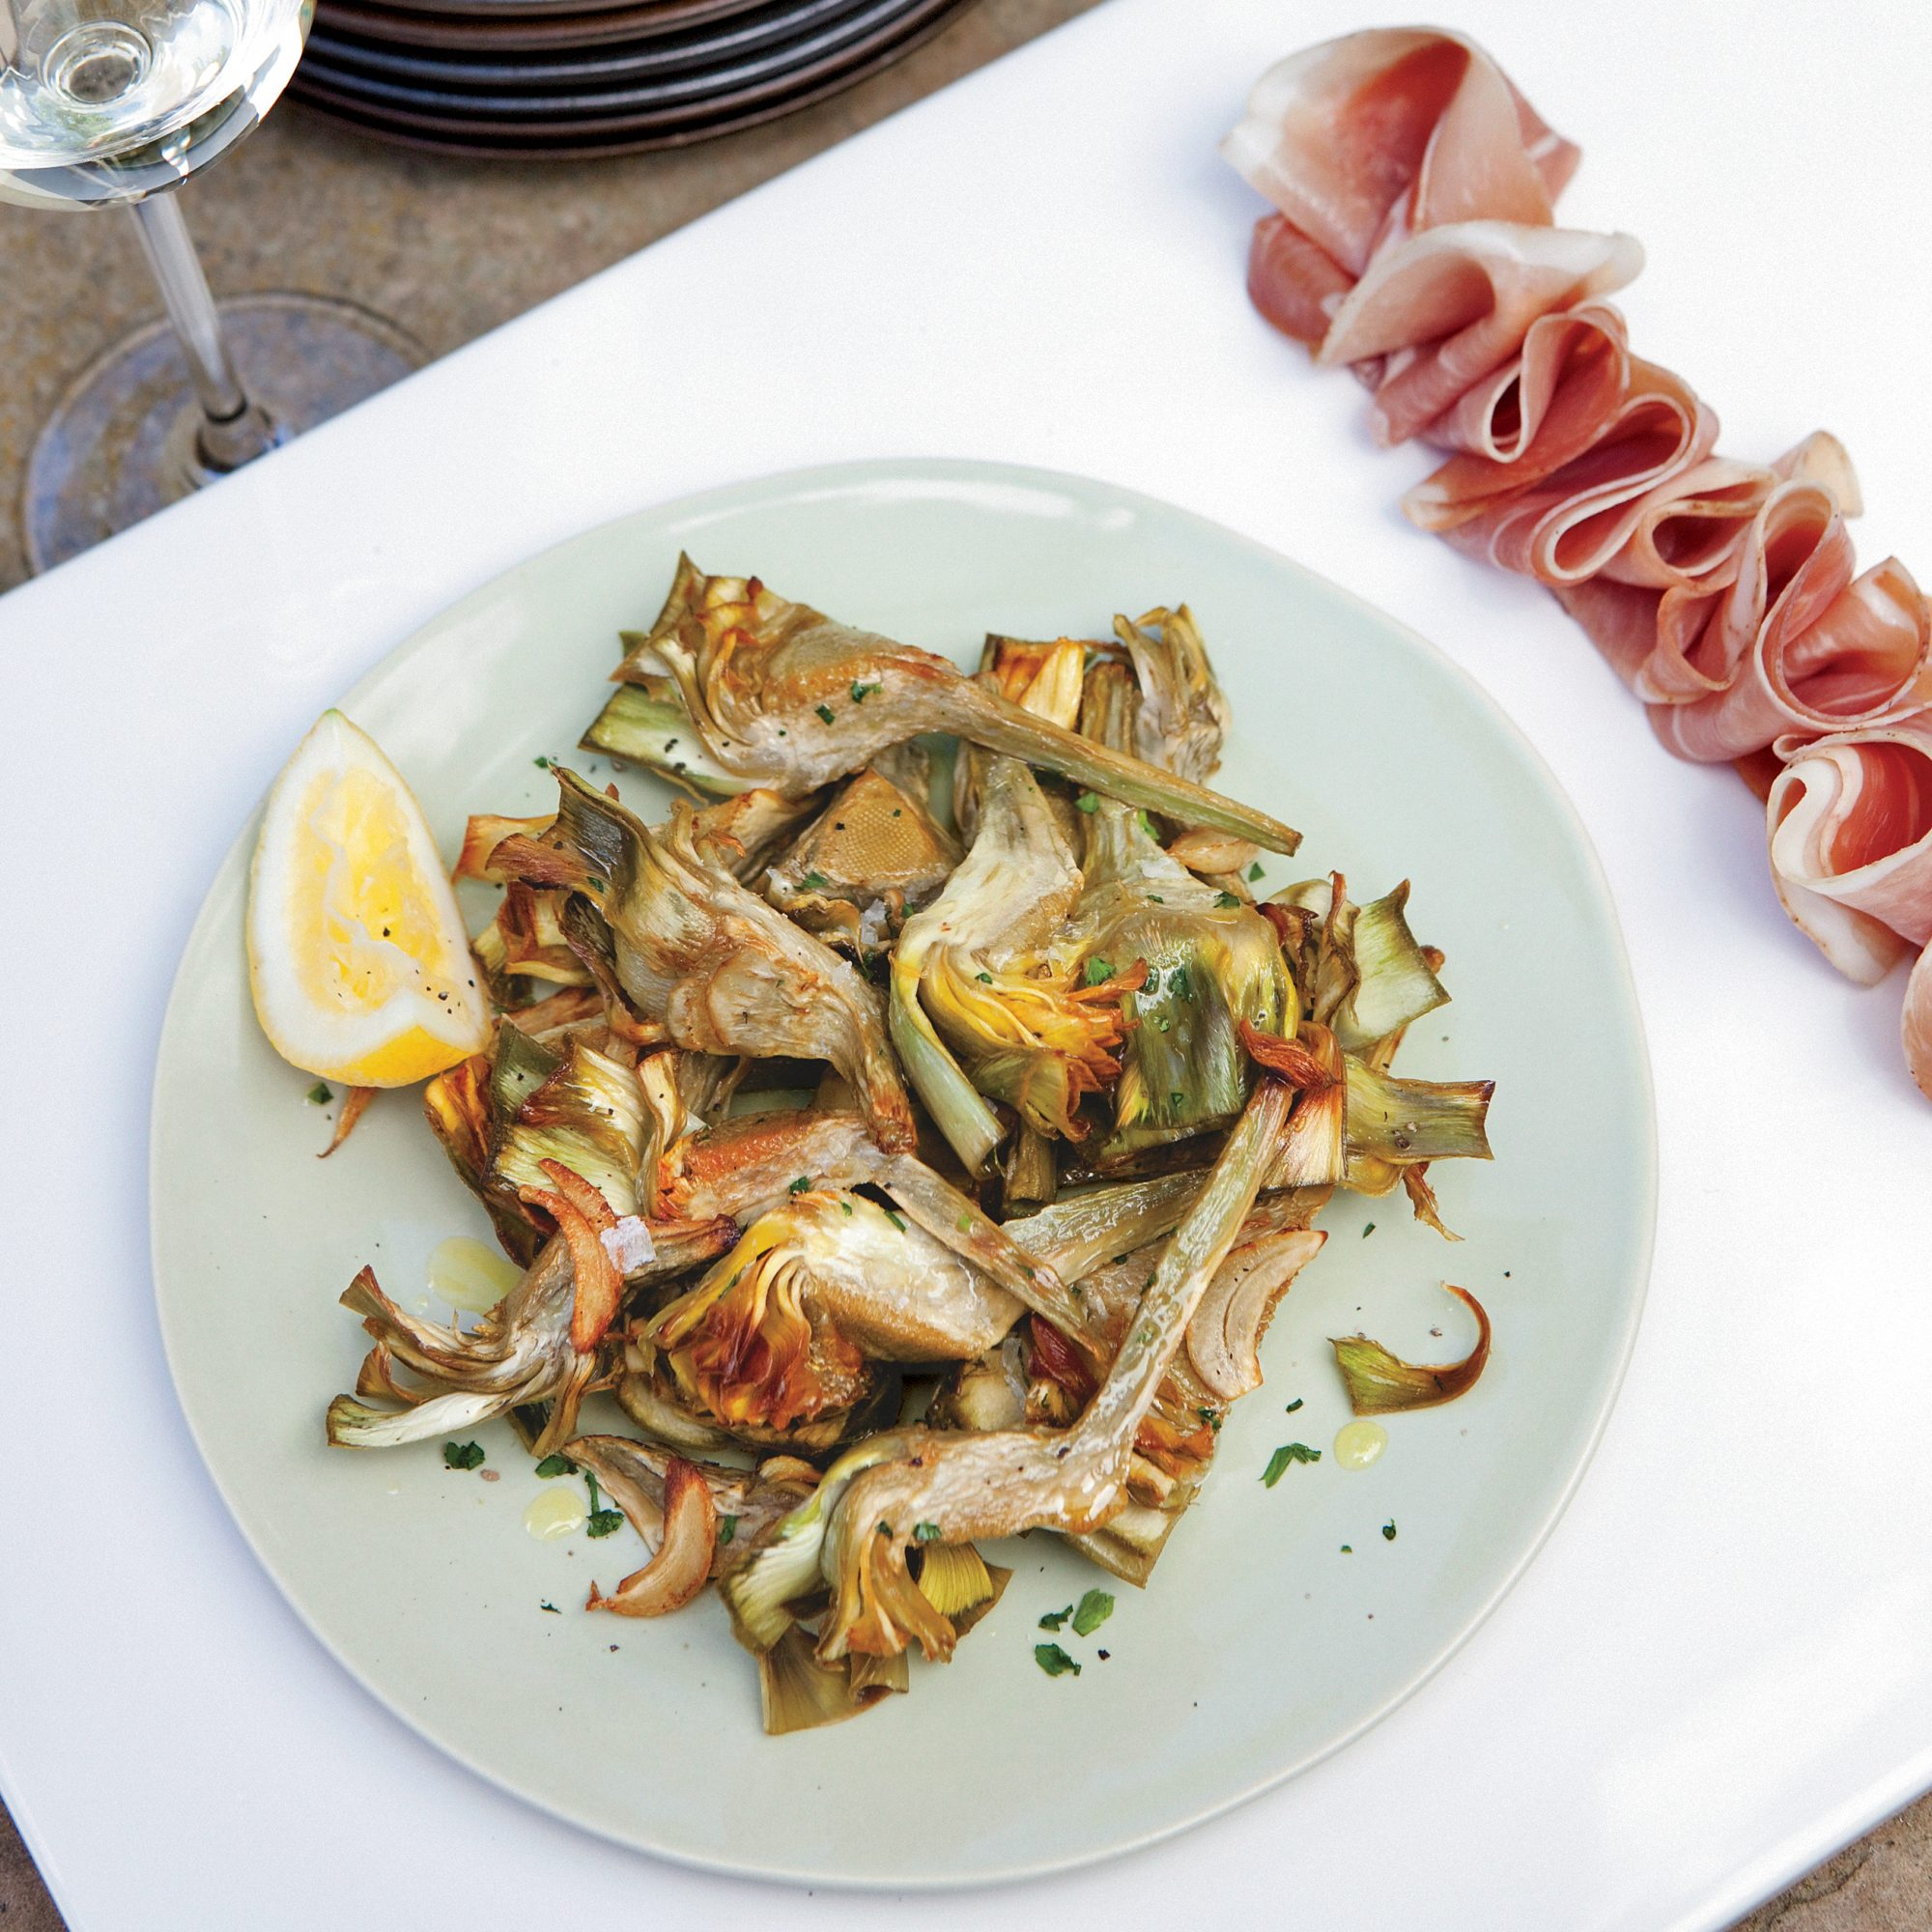 Roasted Artichokes and Prosciutto